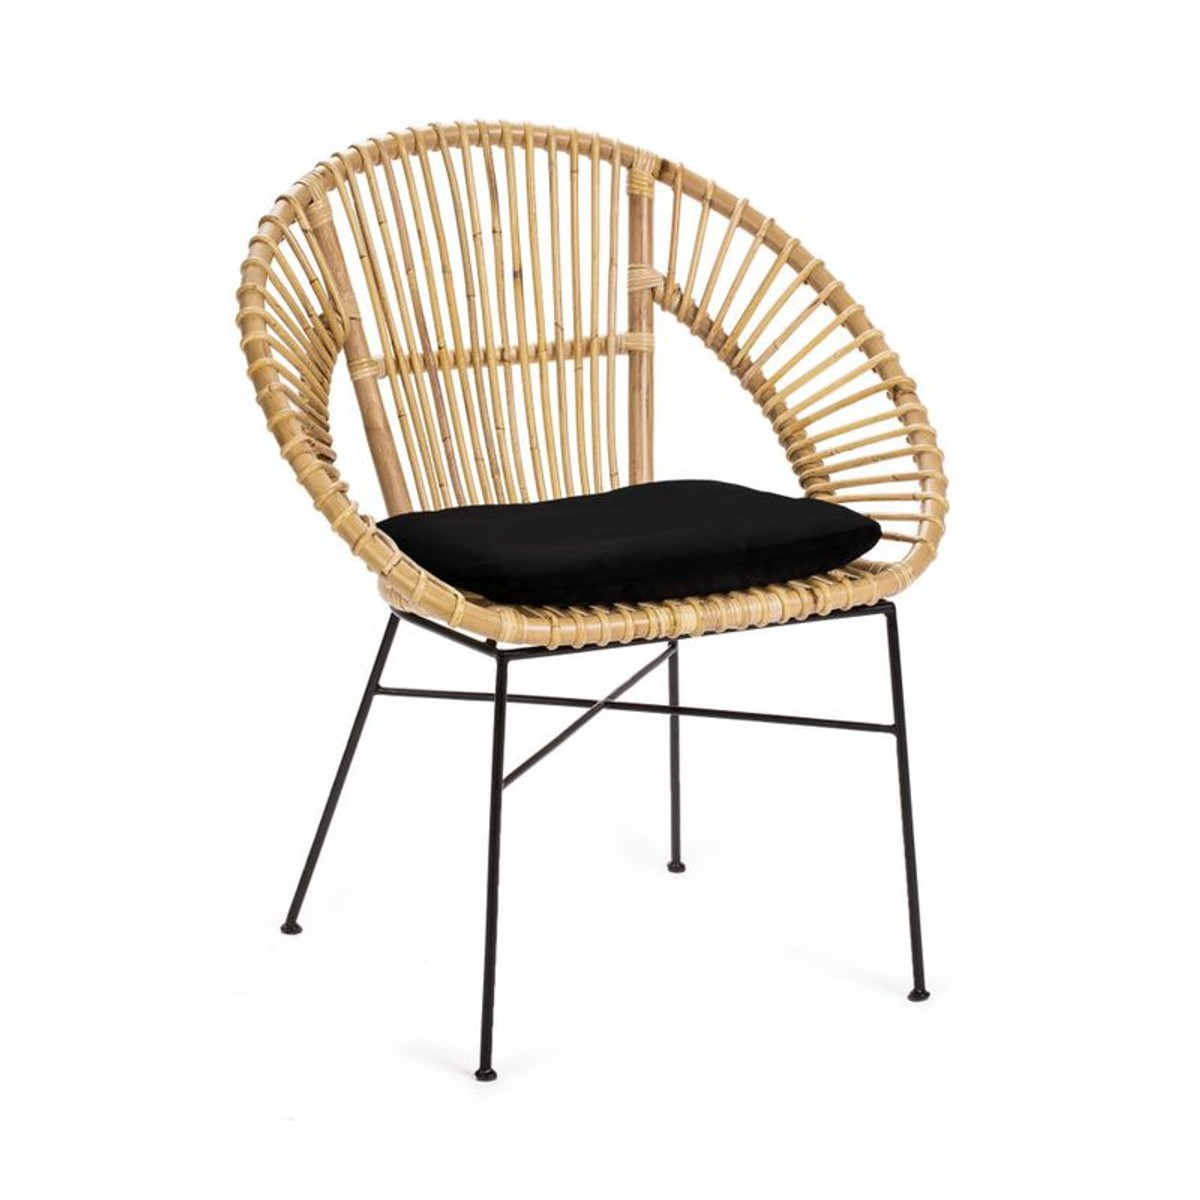 Salon De Jardin En Rotin Naturel Inspirant Fauteuil Design En Rotin Drawer Iguazu Of 24 Inspirant Salon De Jardin En Rotin Naturel